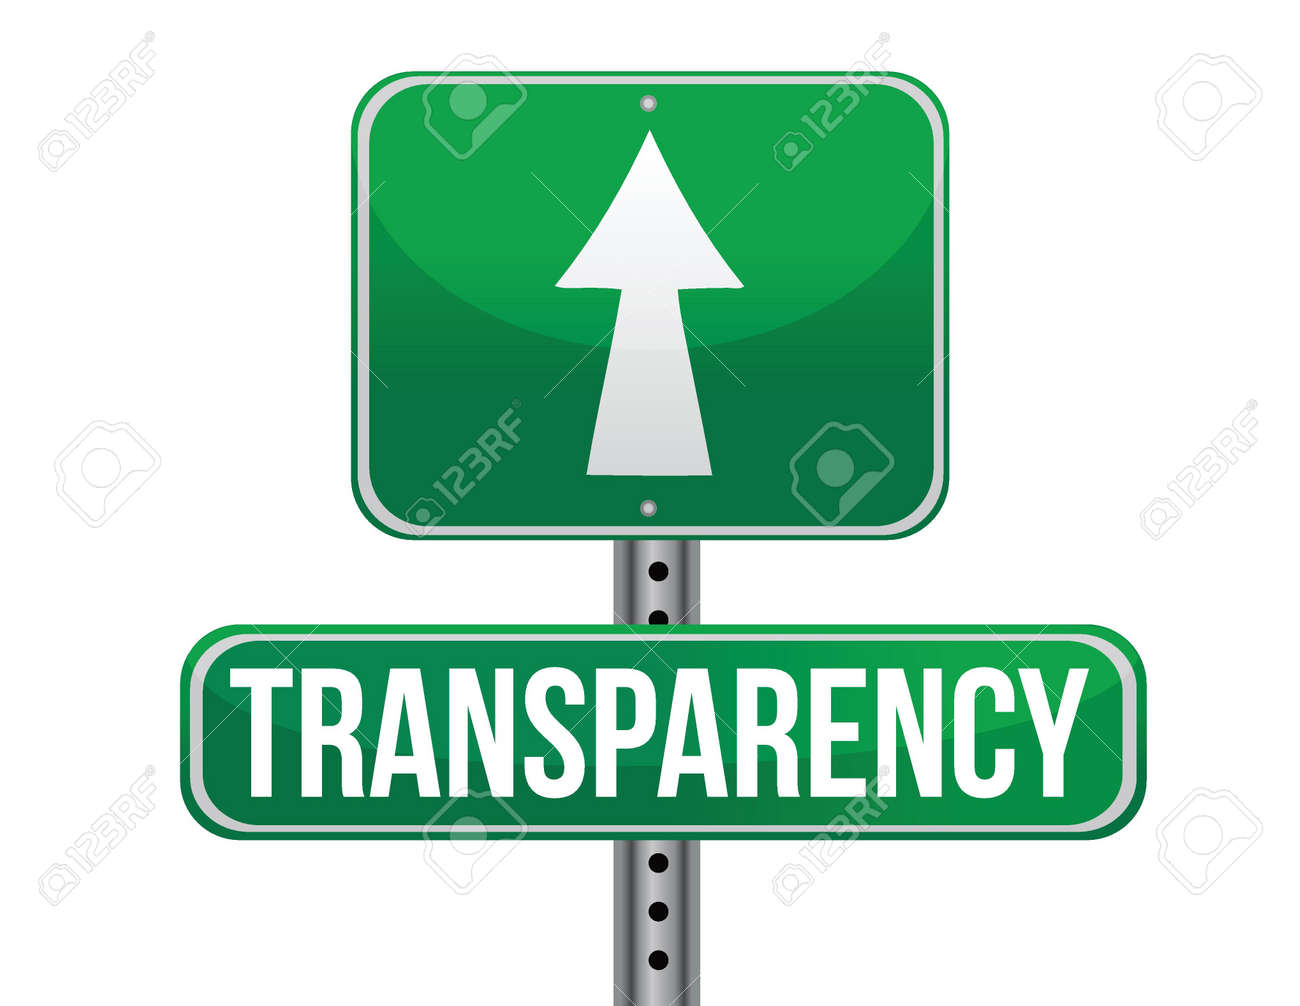 transparency road sign illustration design over a white background Stock Vector - 19311169